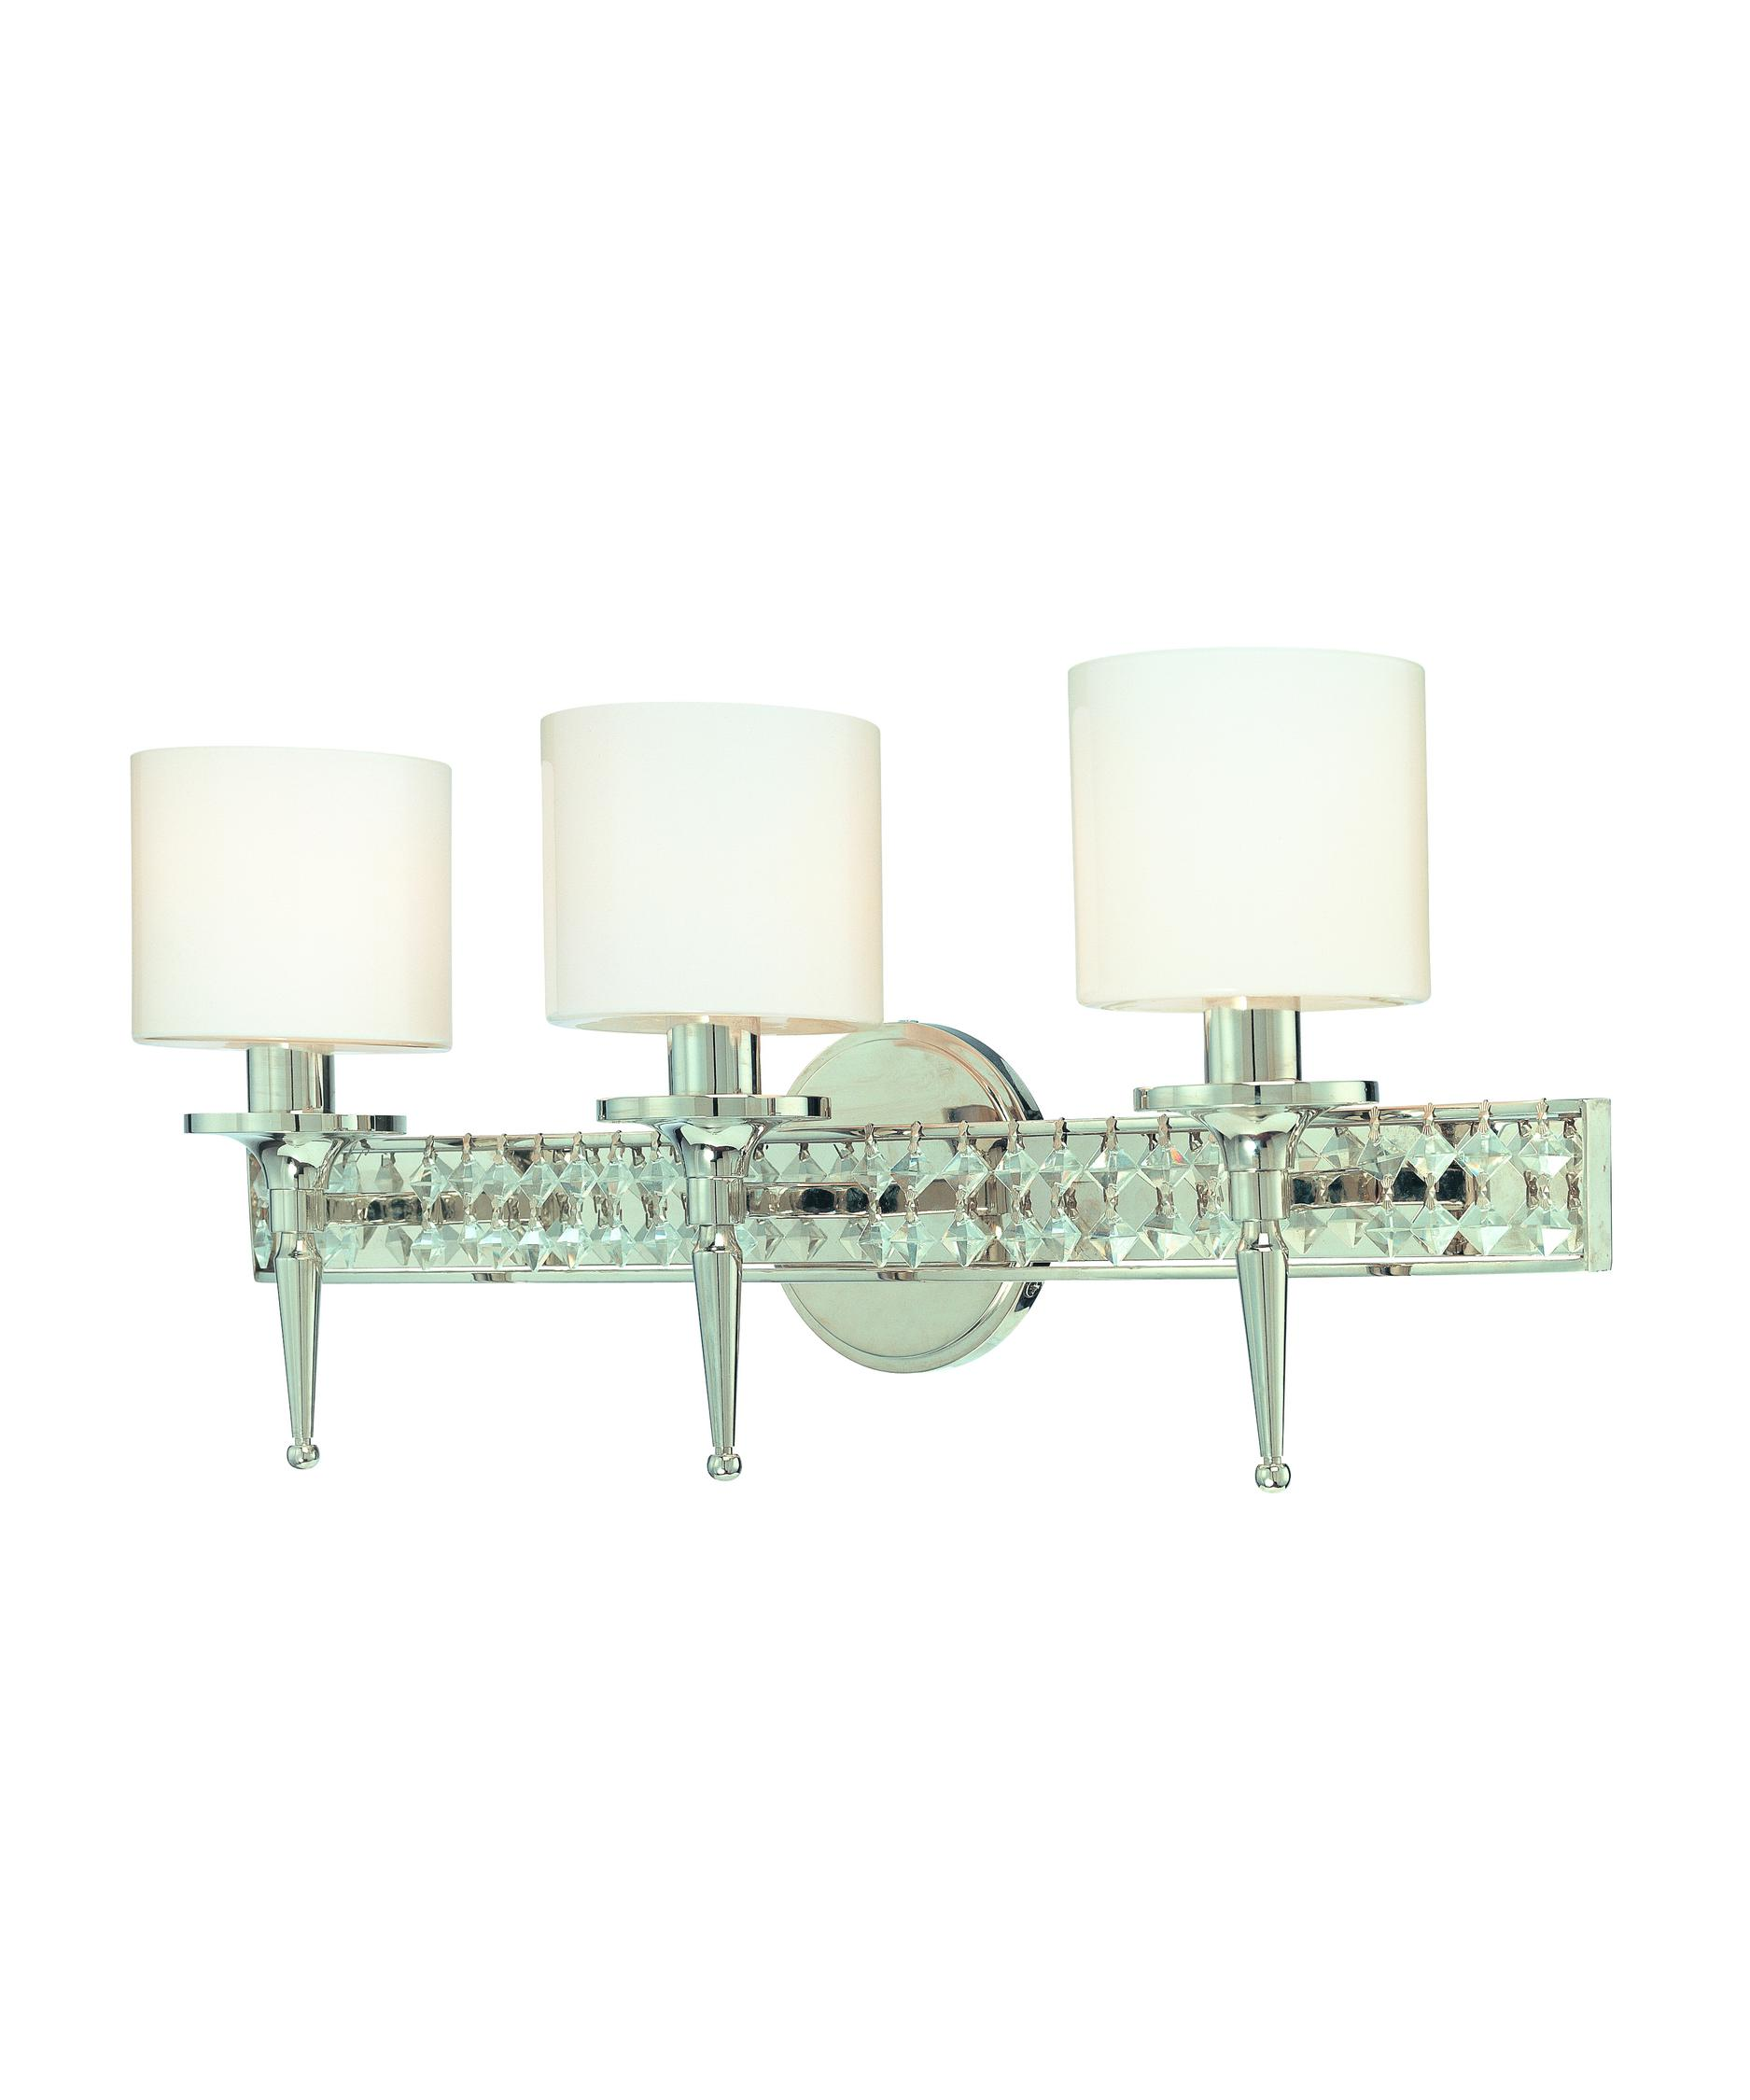 Bathroom Vanity Lights Polished Nickel troy lighting b1923 collins 24 inch wide bath vanity light